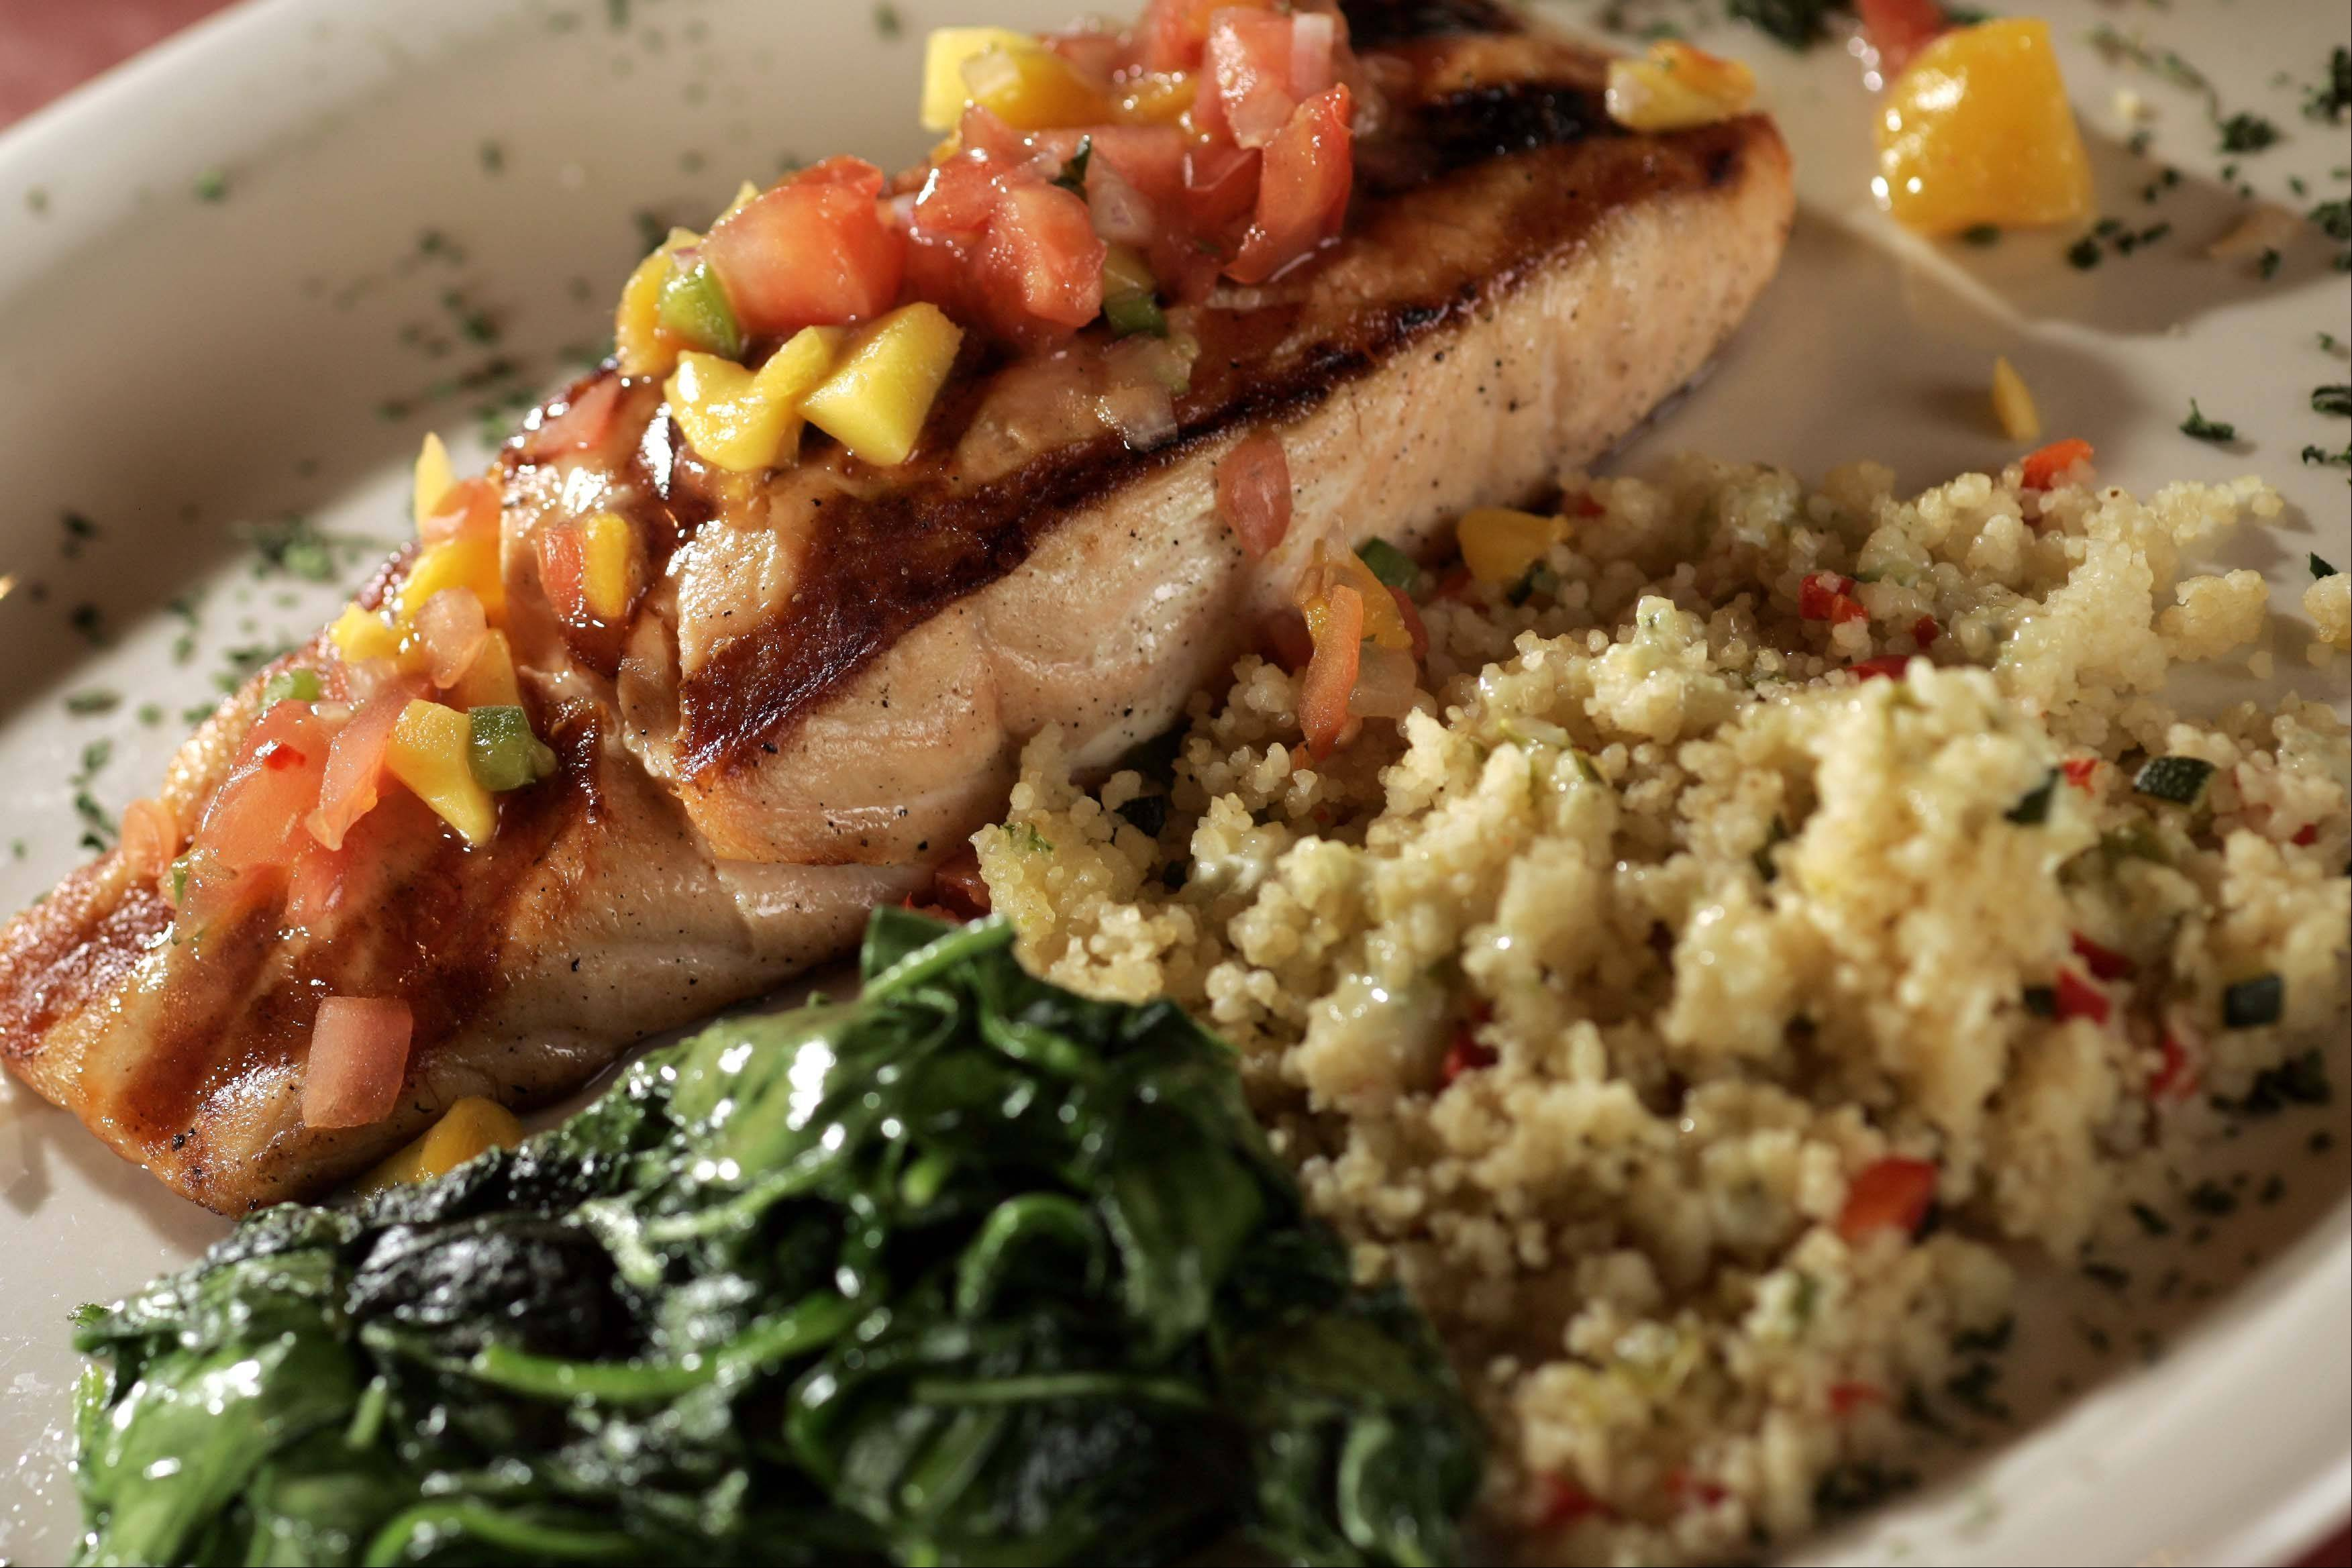 Salmon topped with mango jalape�o salsa comes with well-prepared sides of spinach and quinoa at West End in West Dundee.